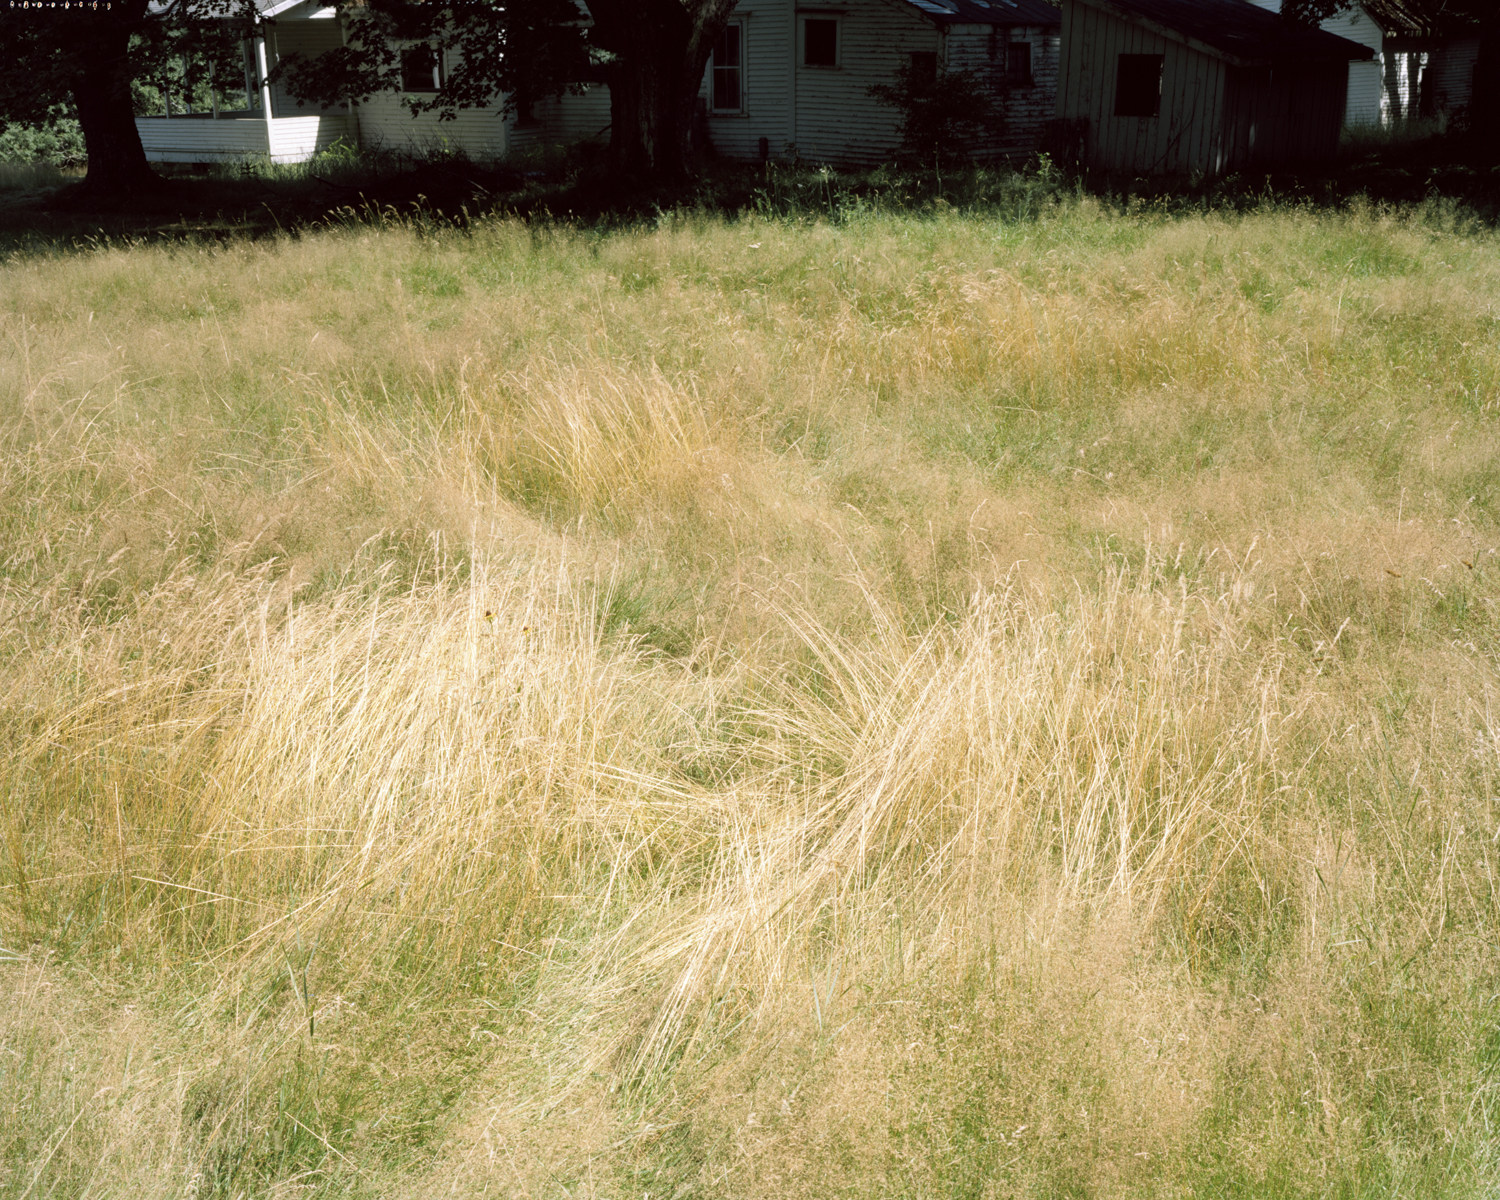 Leaves of Grass - Perkins Township, ME, 2013